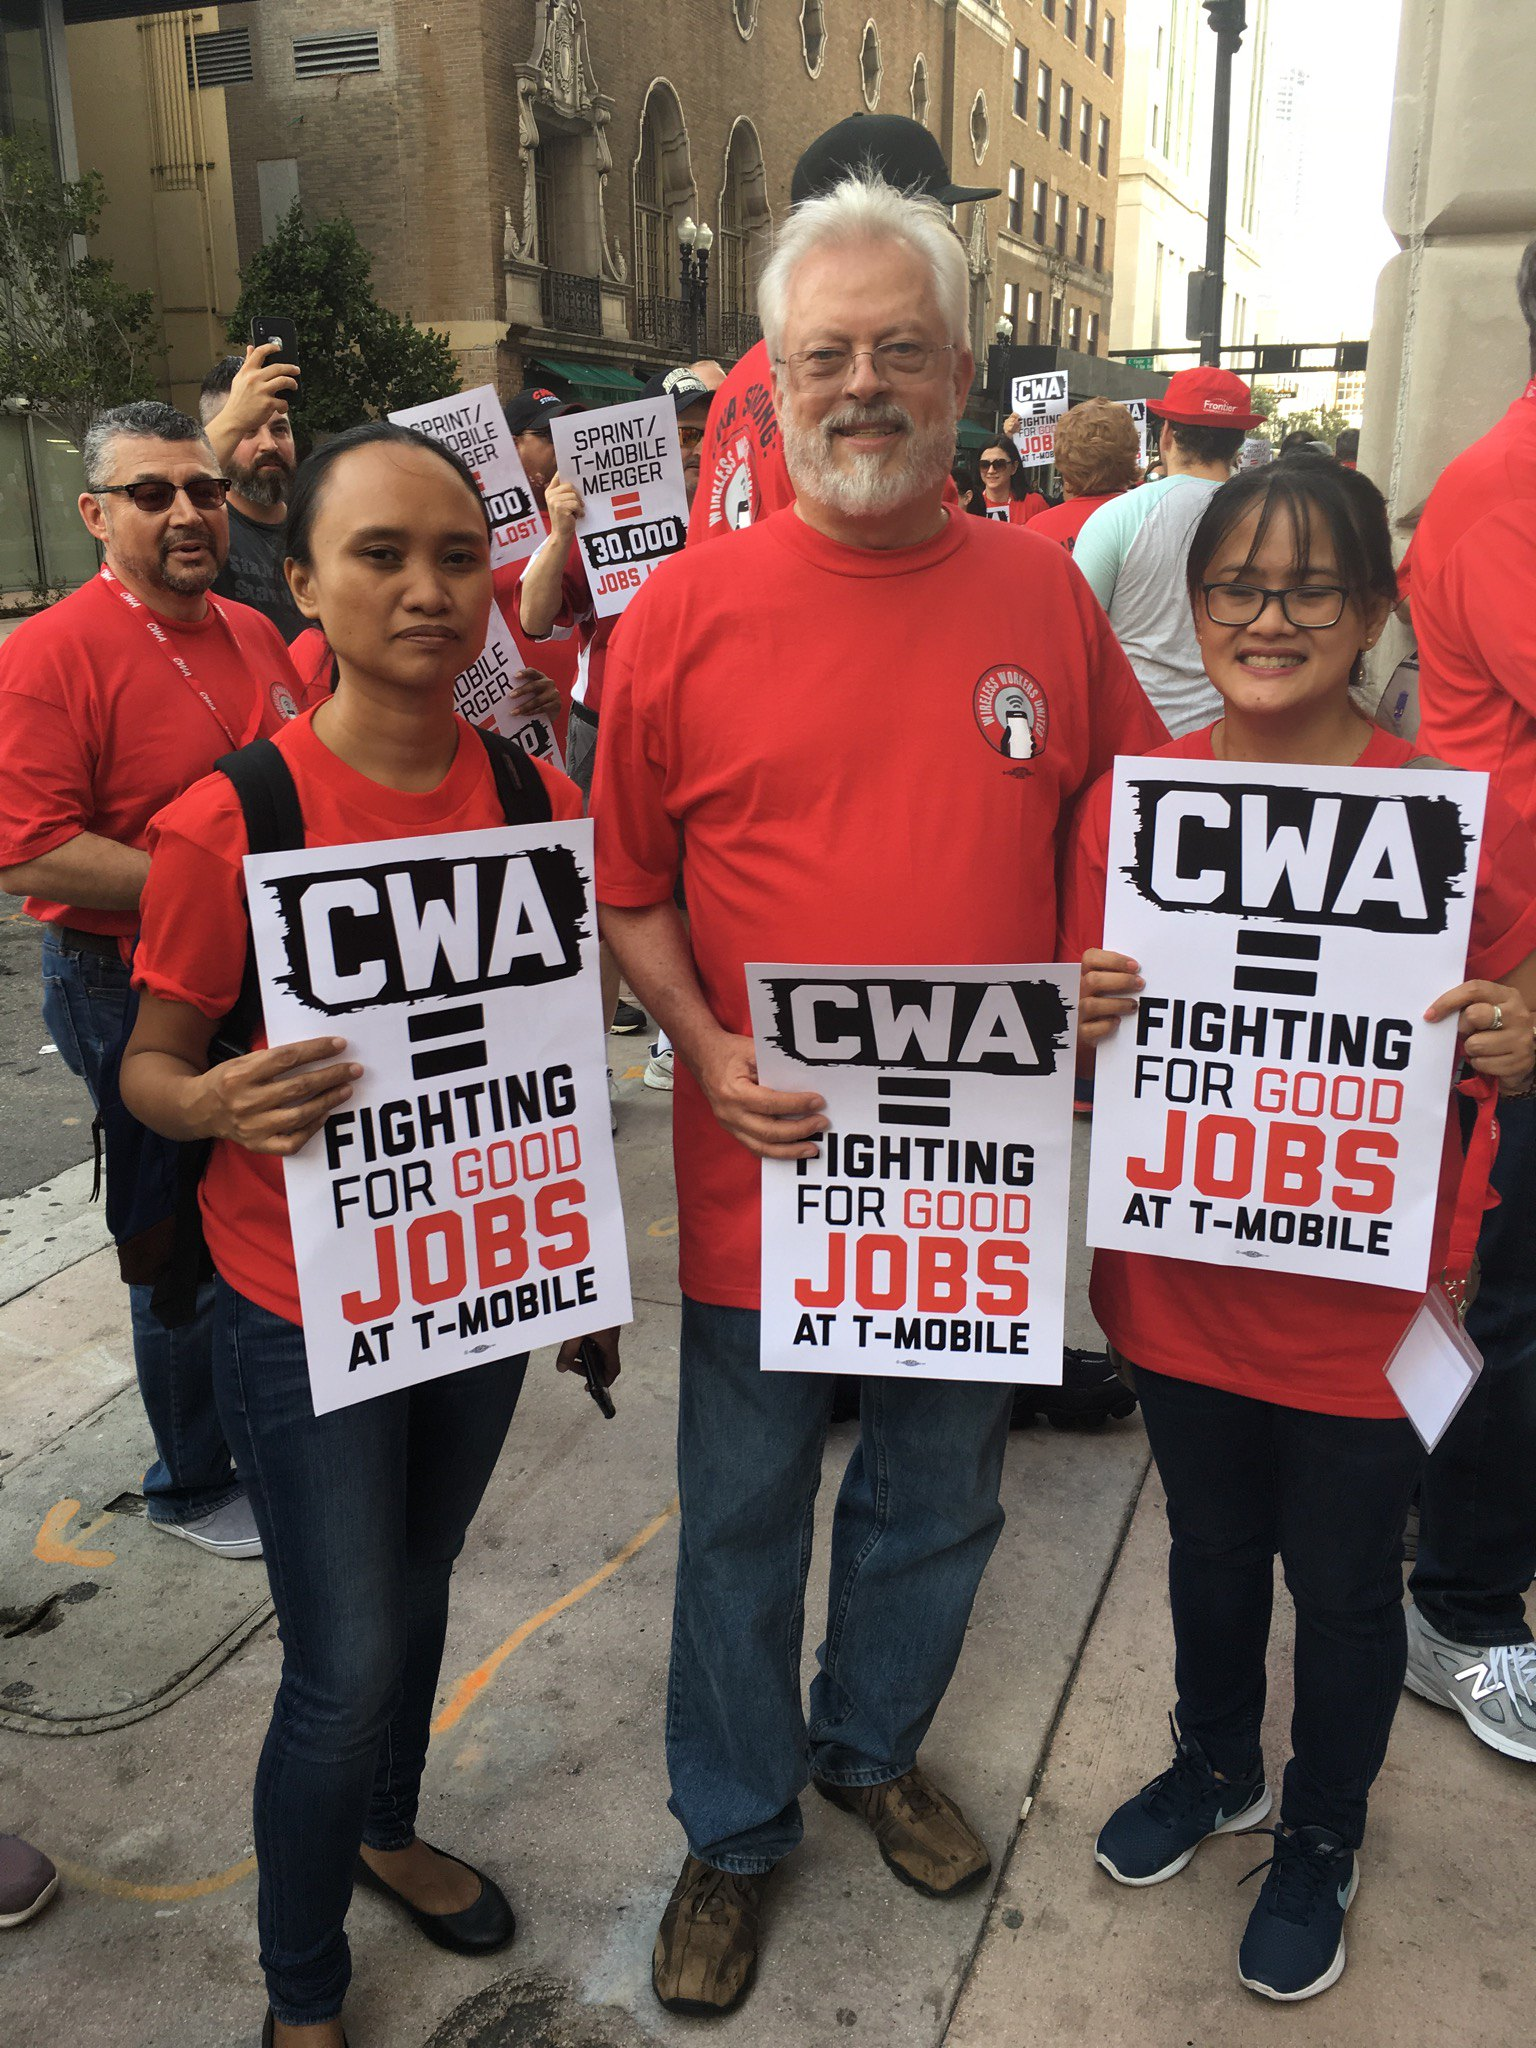 CWA Supports jobs at T-mobile